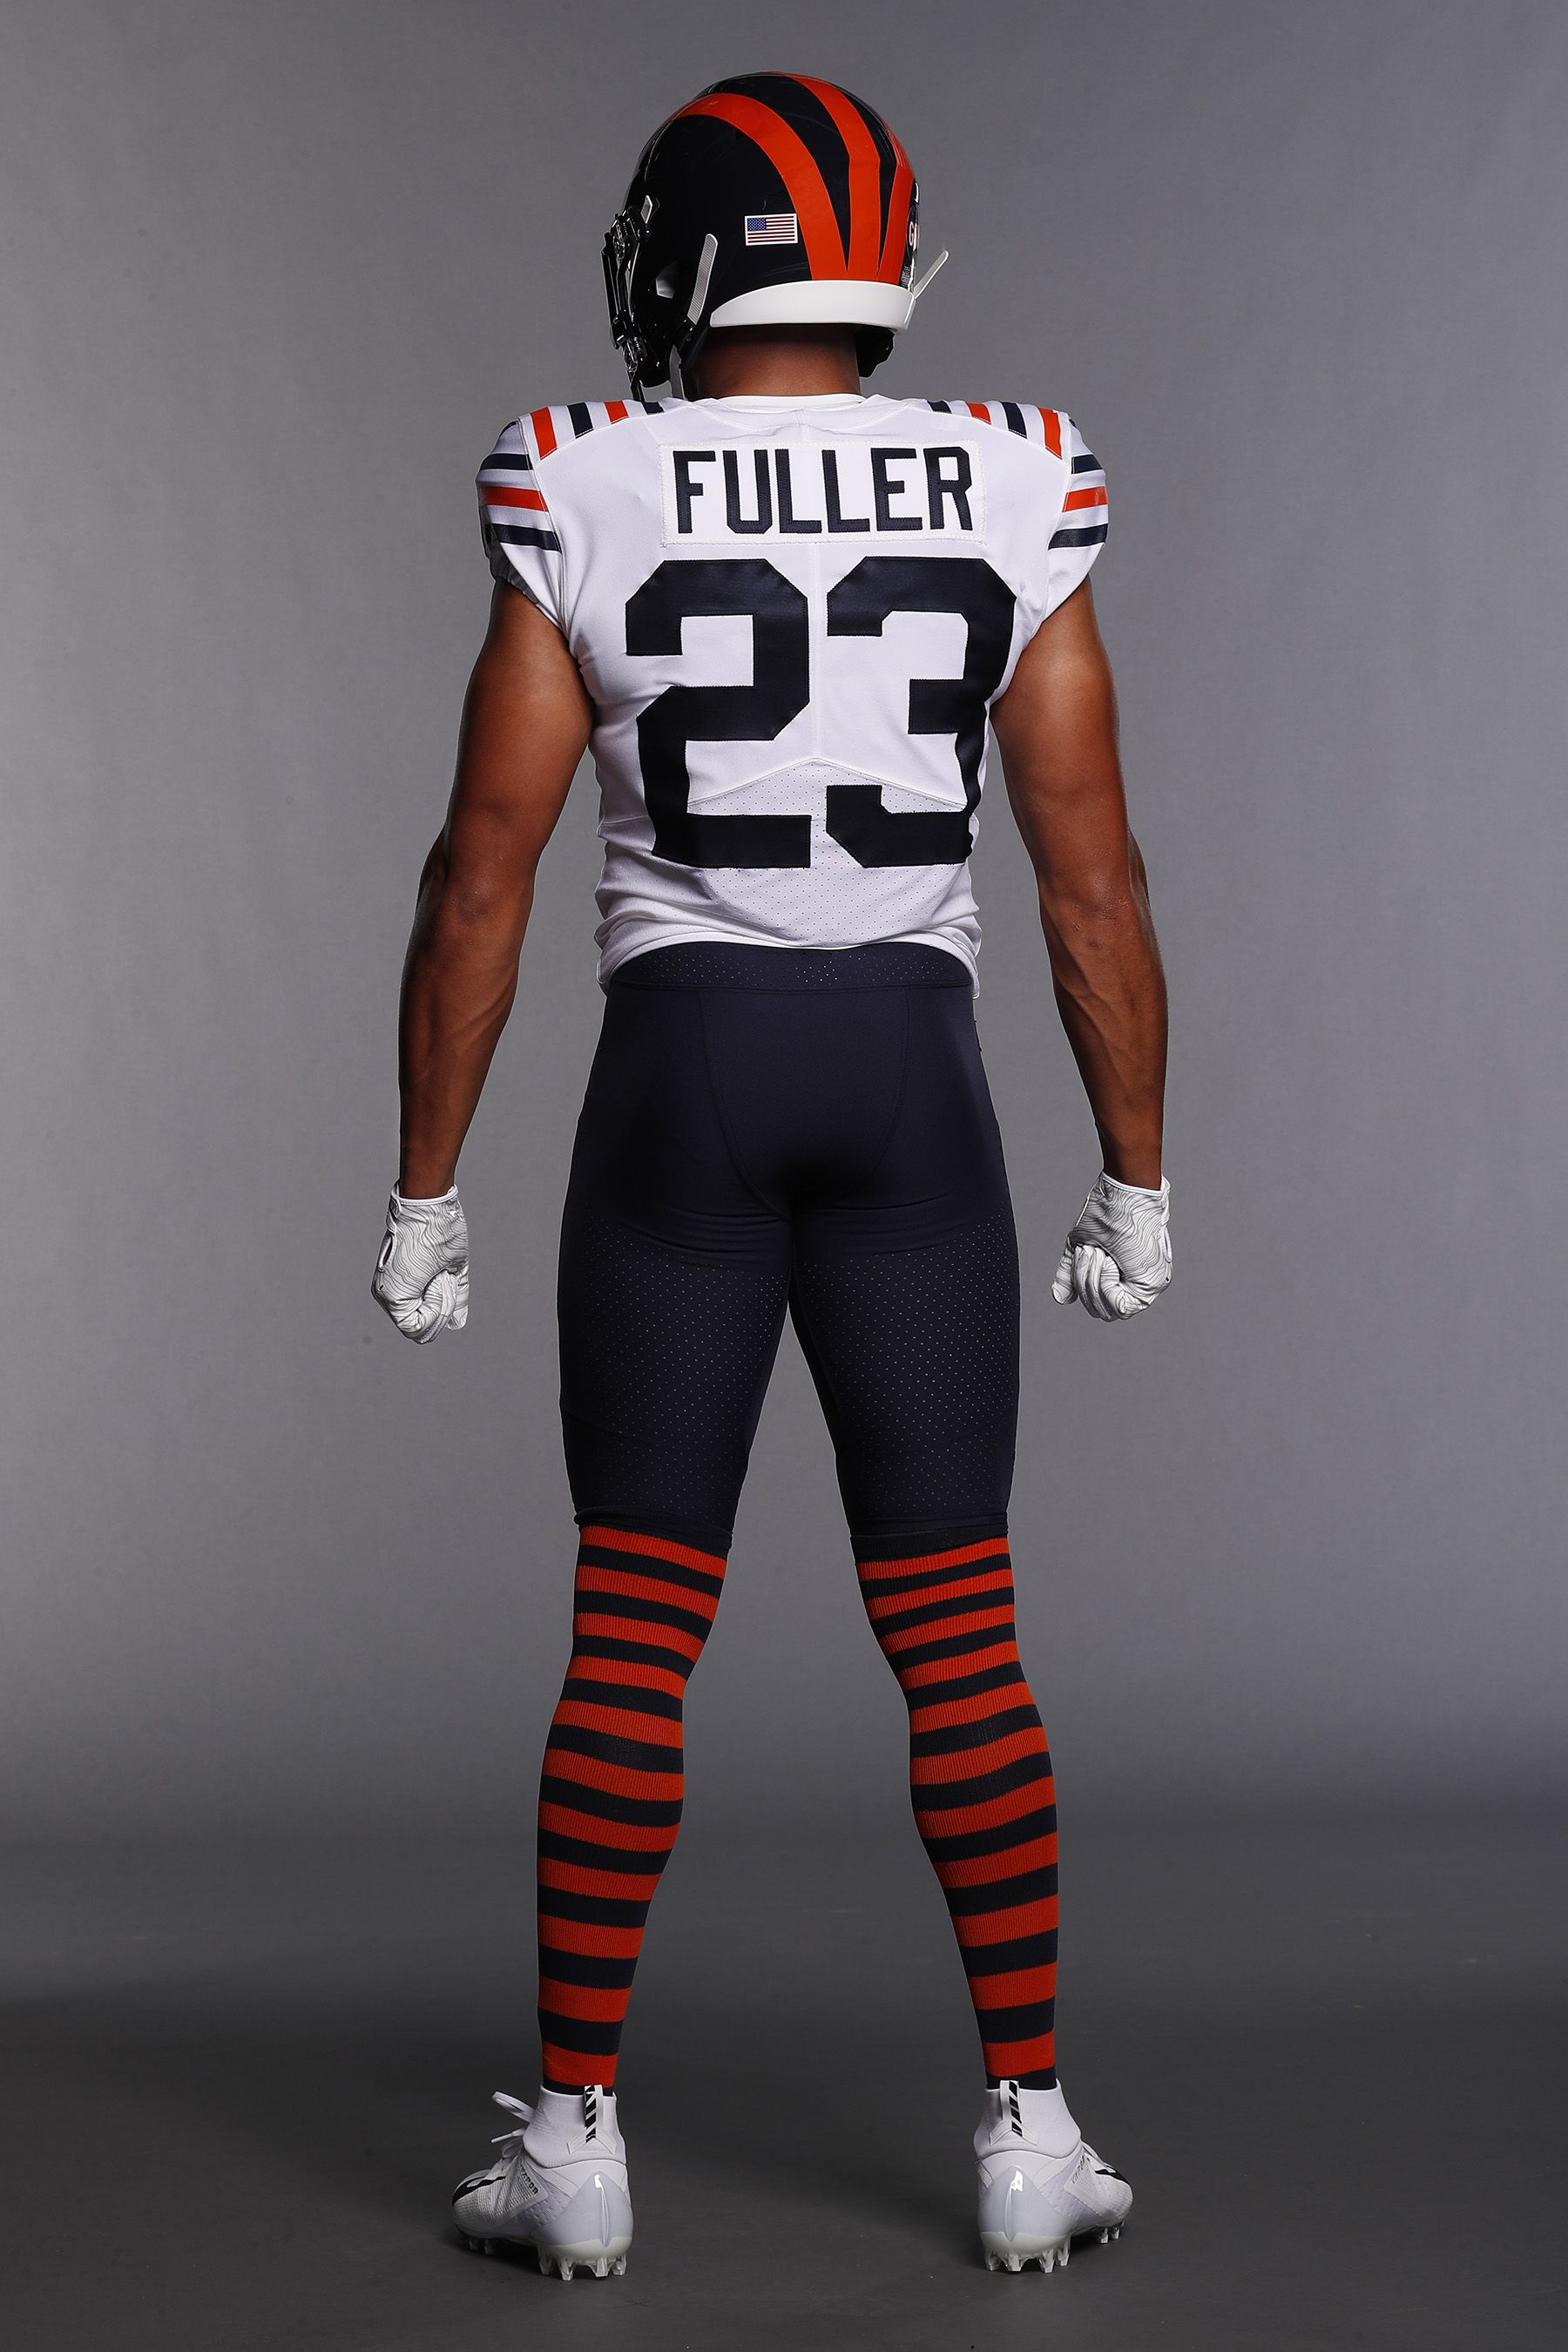 Bears Officially Unveil New Throwback Uniforms Nbc Sports Chicago Chicago Sports Teams Sports Uniforms Patriots Superbowl